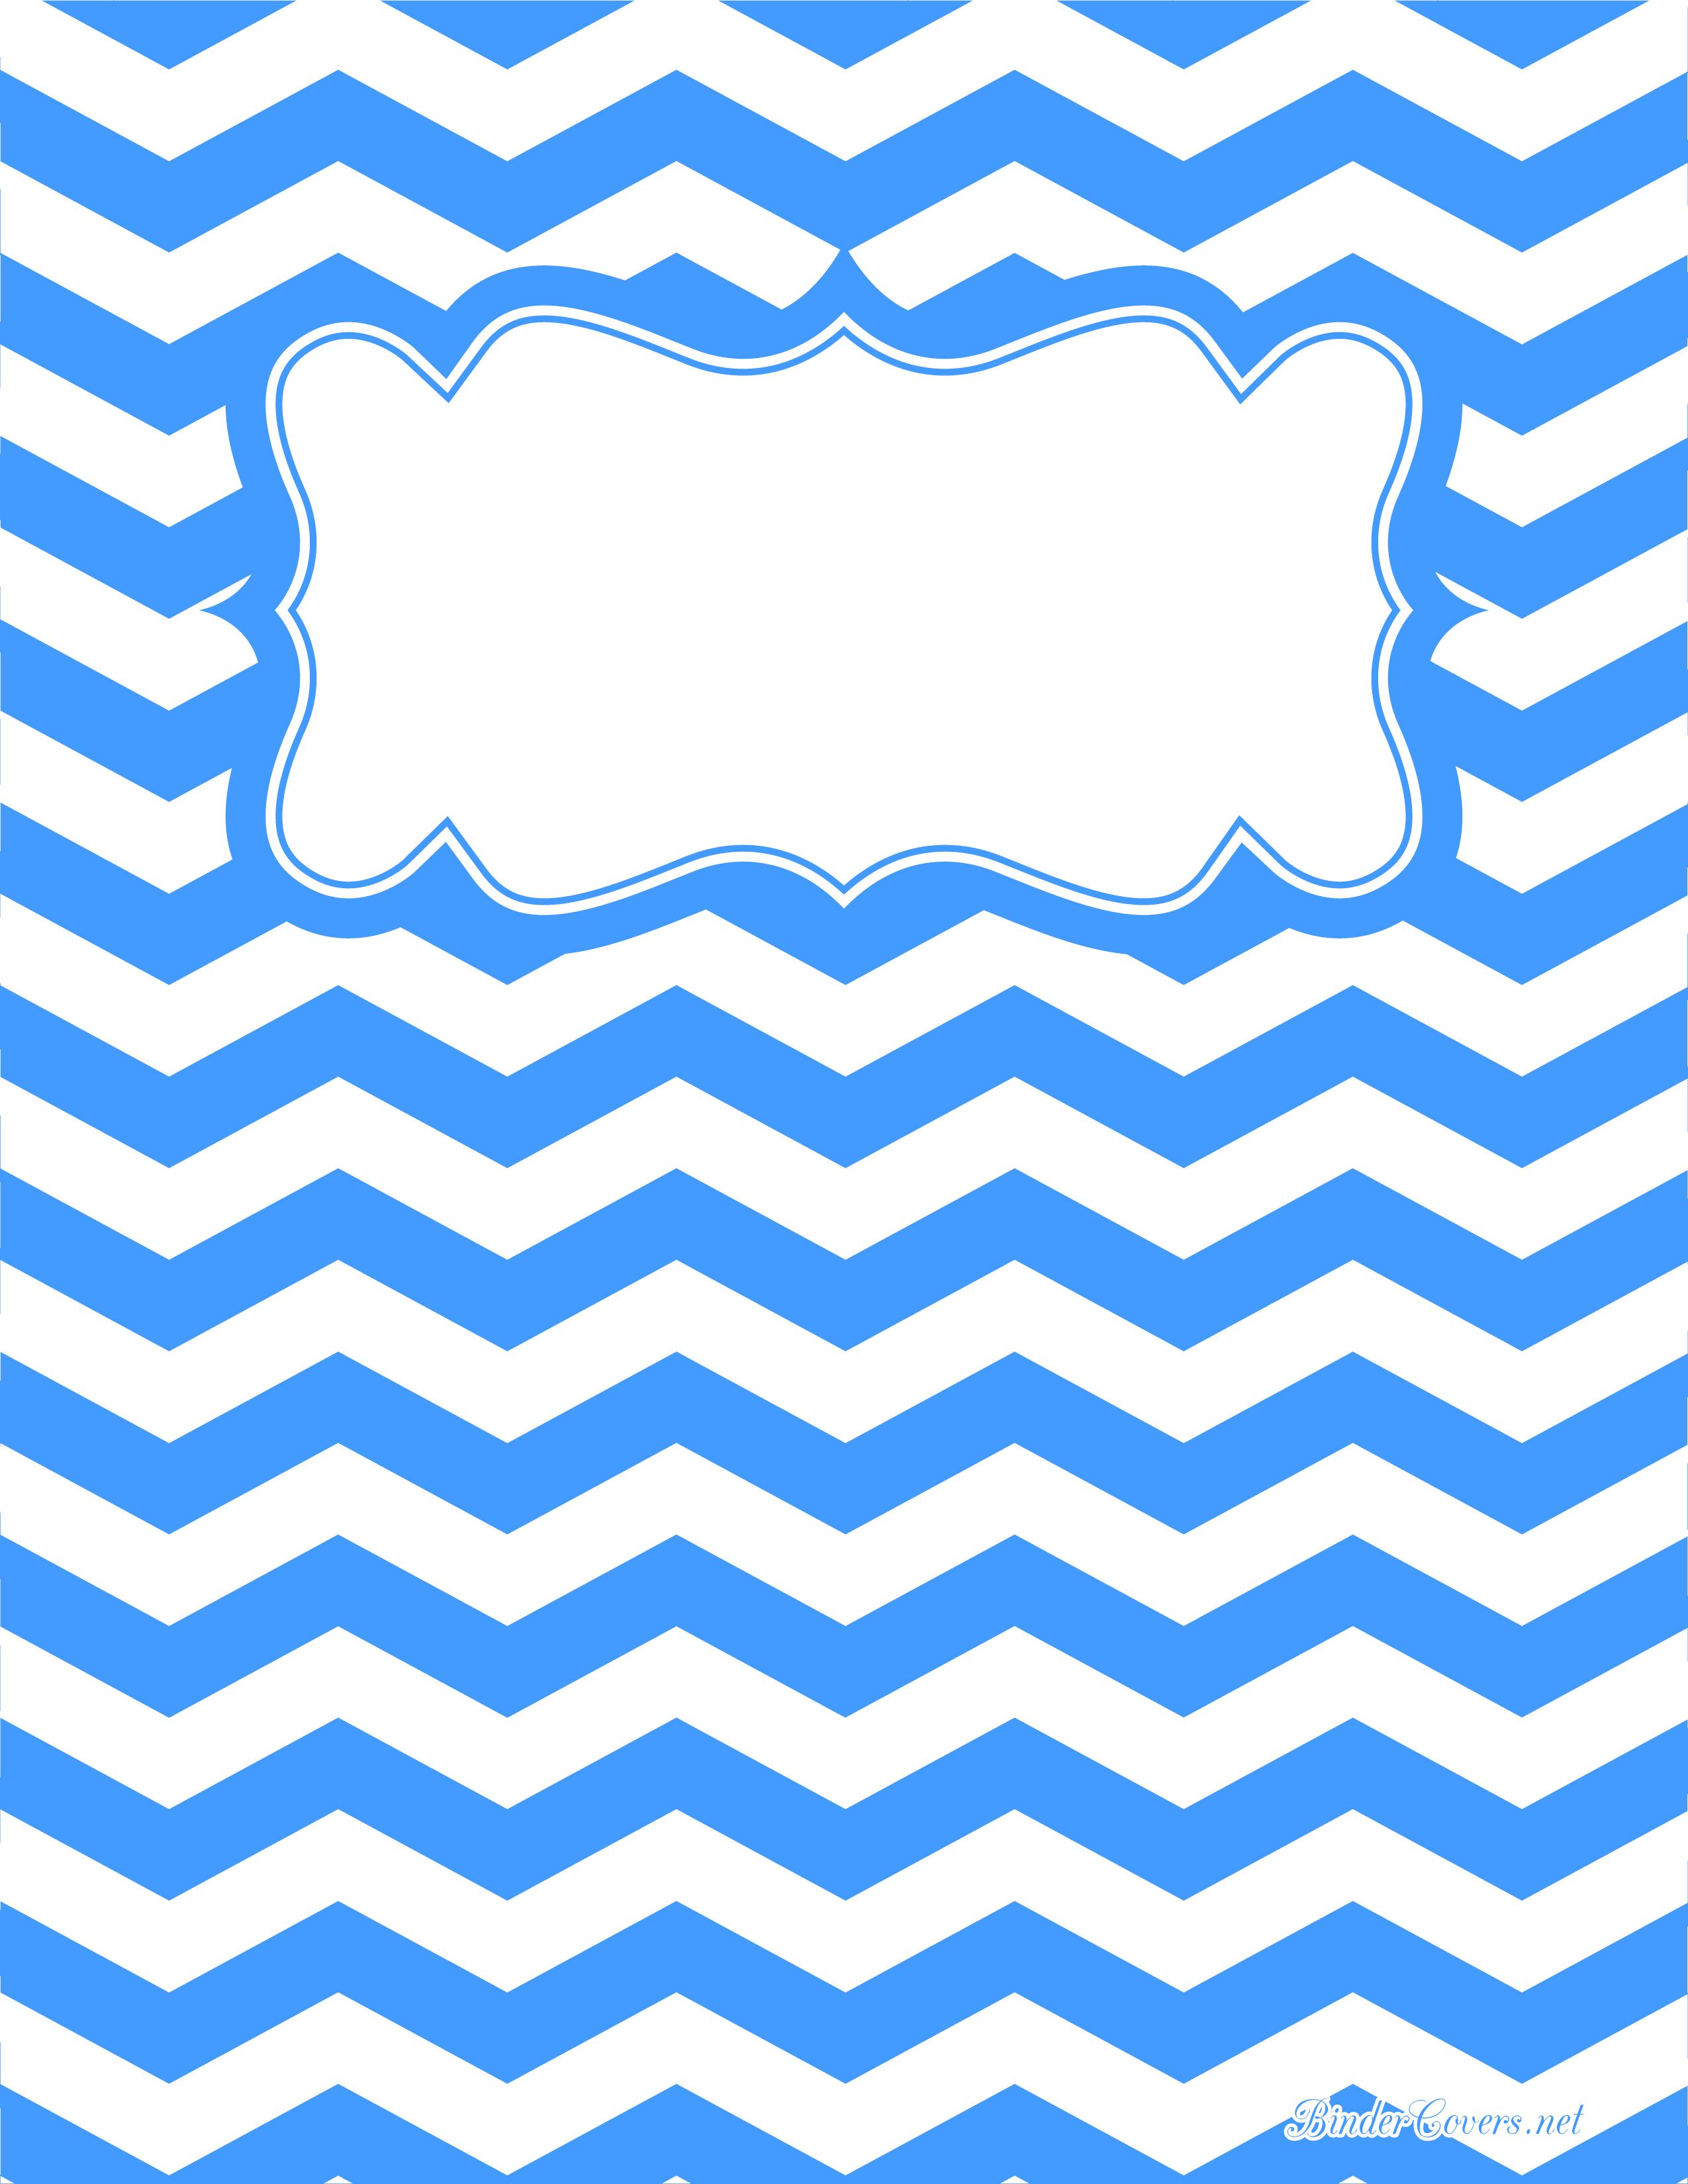 Pin By Joanny Reyes On Printables Chevron Binder Covers Binder Covers Printable Binder Covers Free printable binder cover template